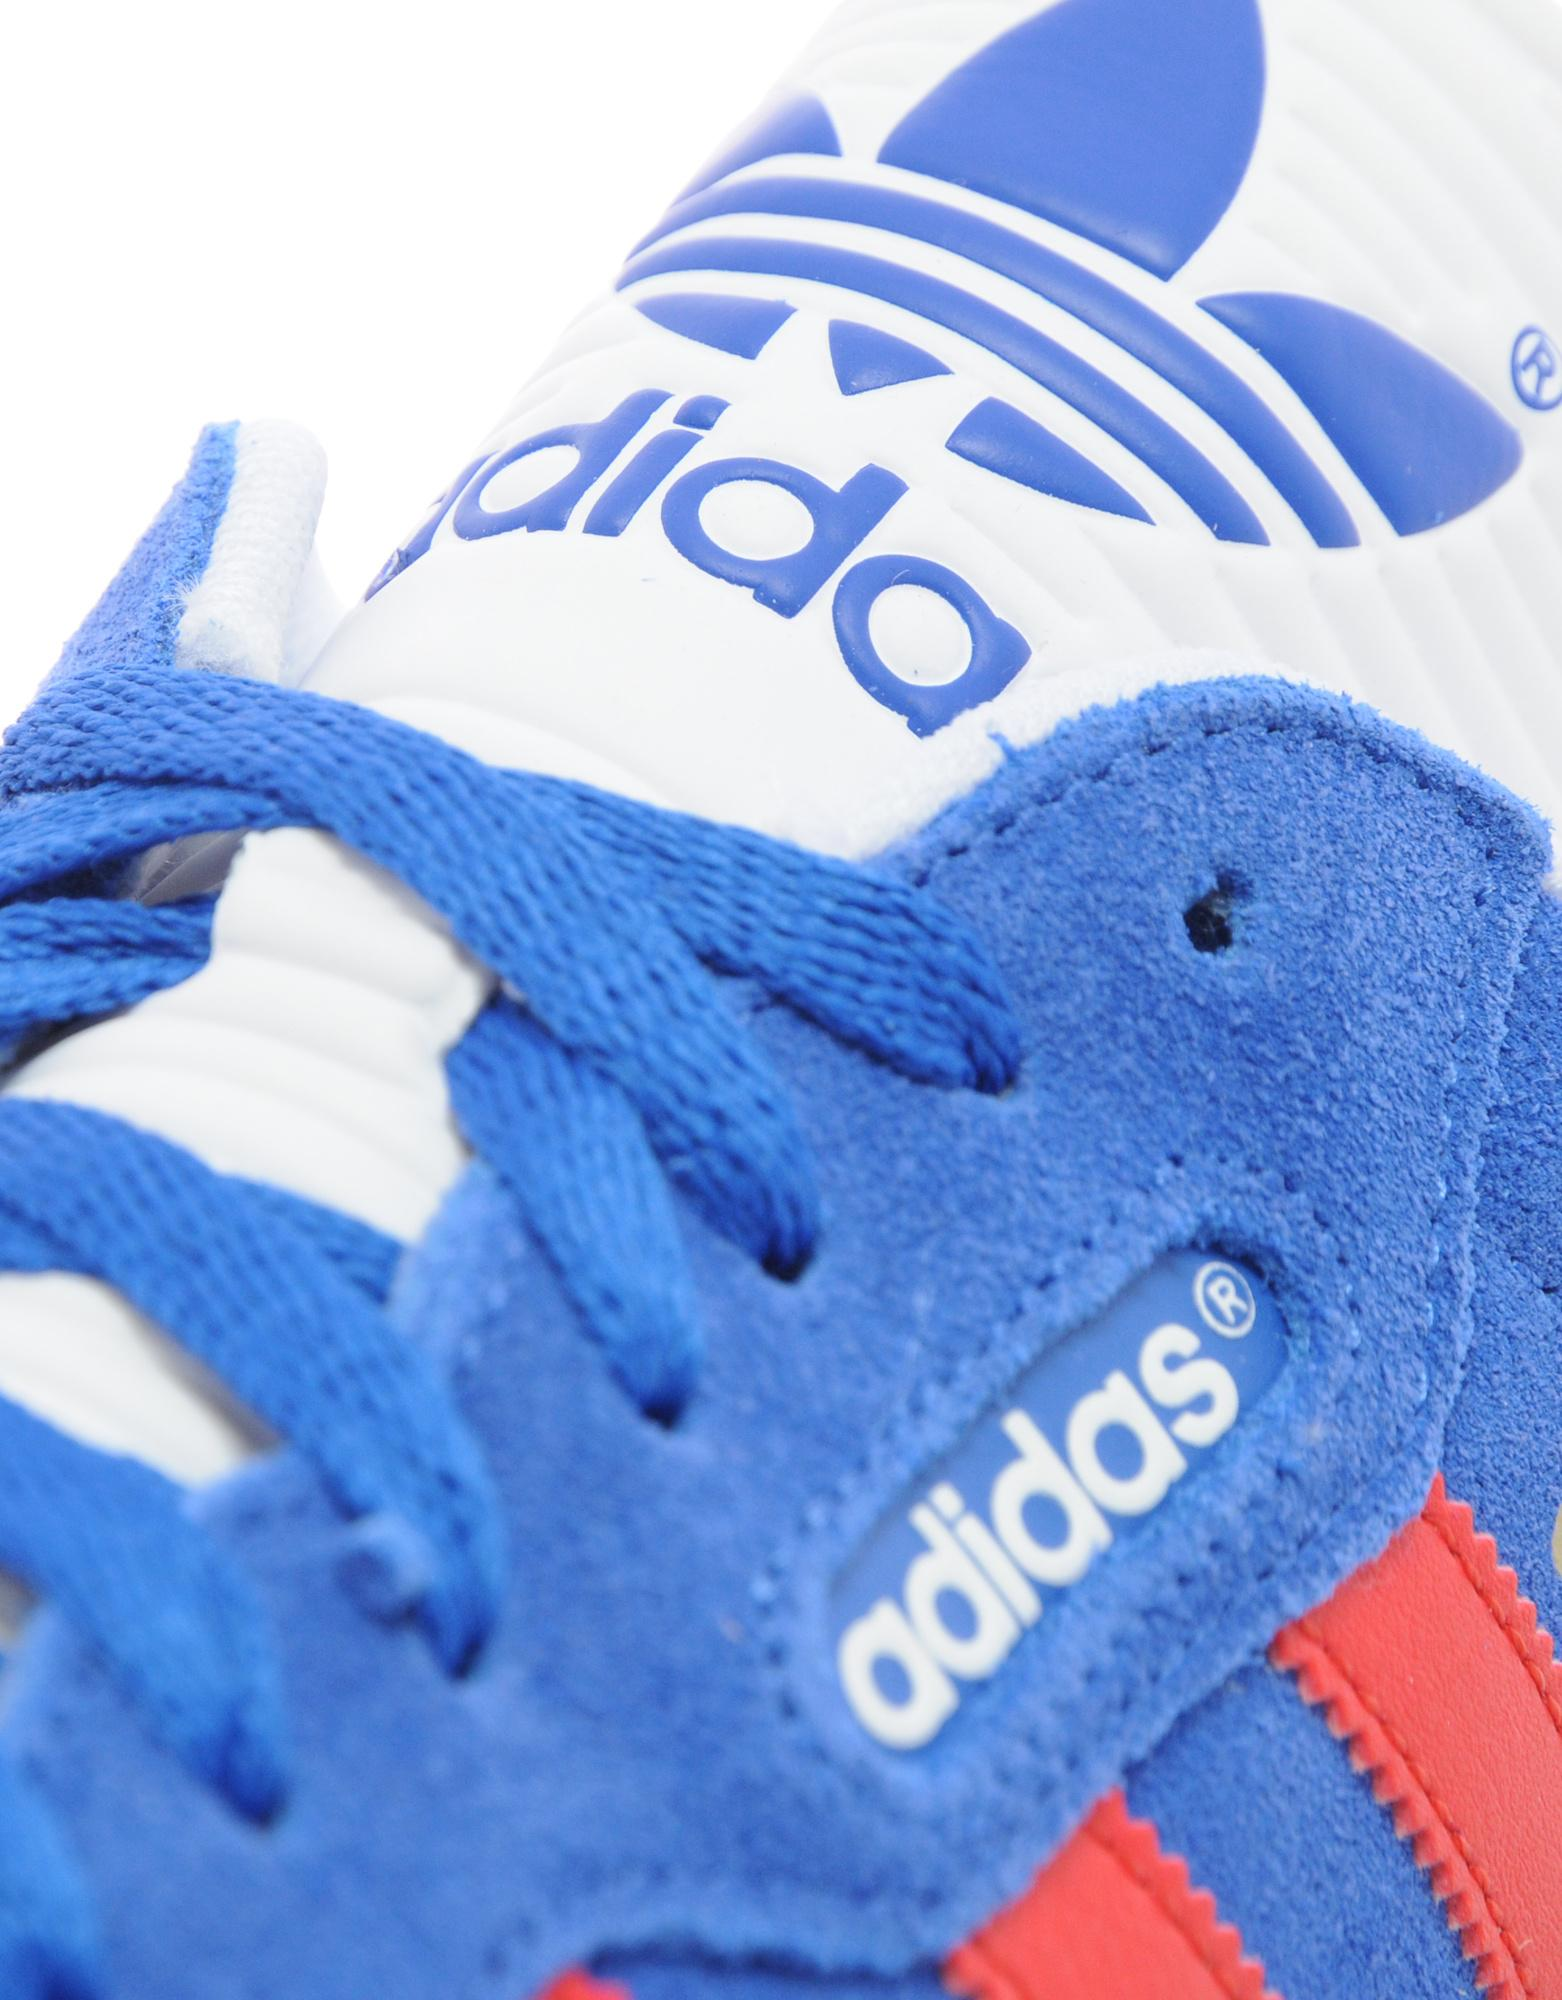 buy adidas samba red blue c0abd 7e9b6